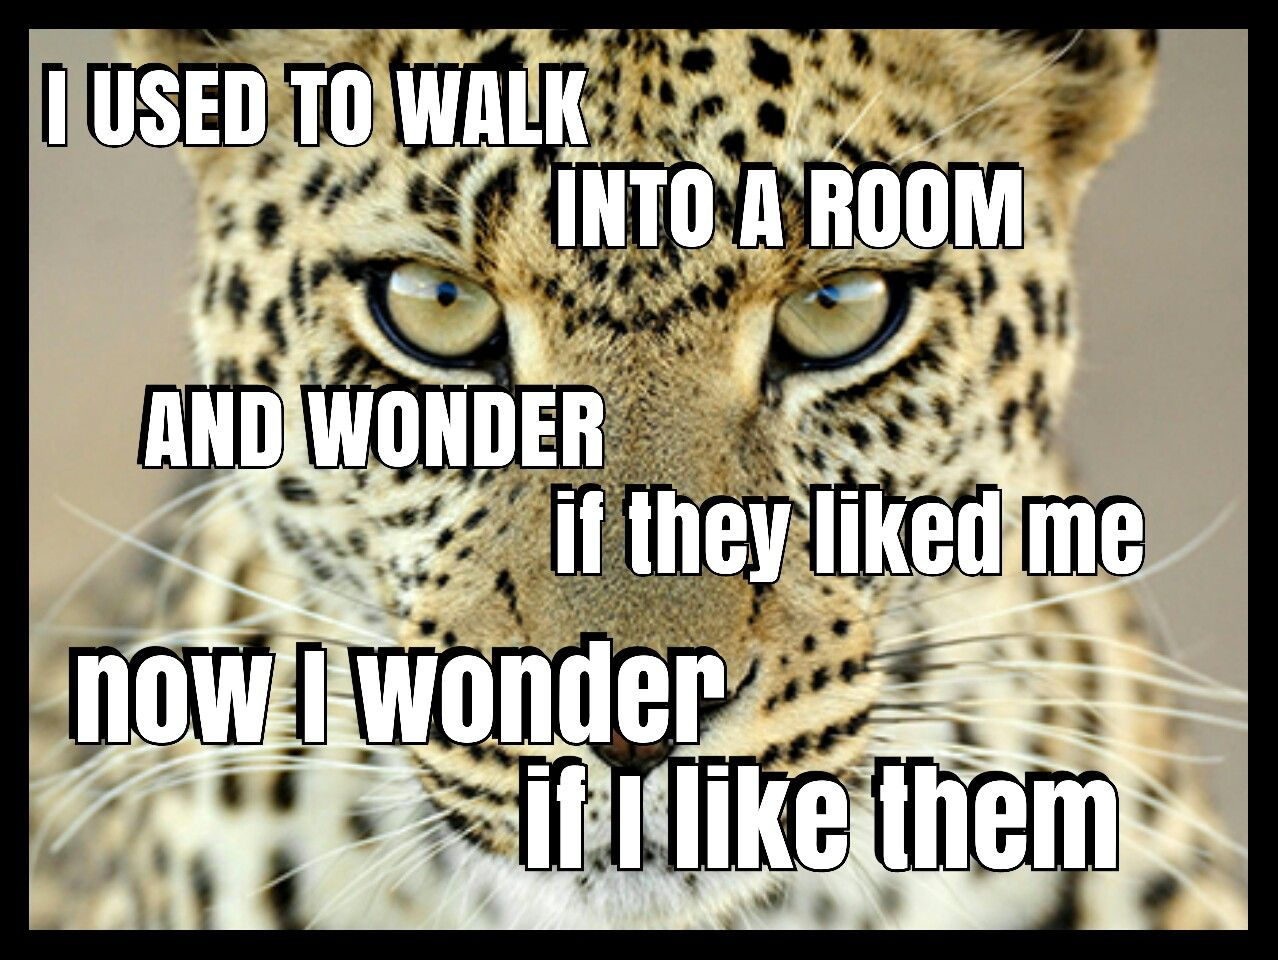 I used to walk into a room and wonder if they liked me. Now I wonder if I like them.